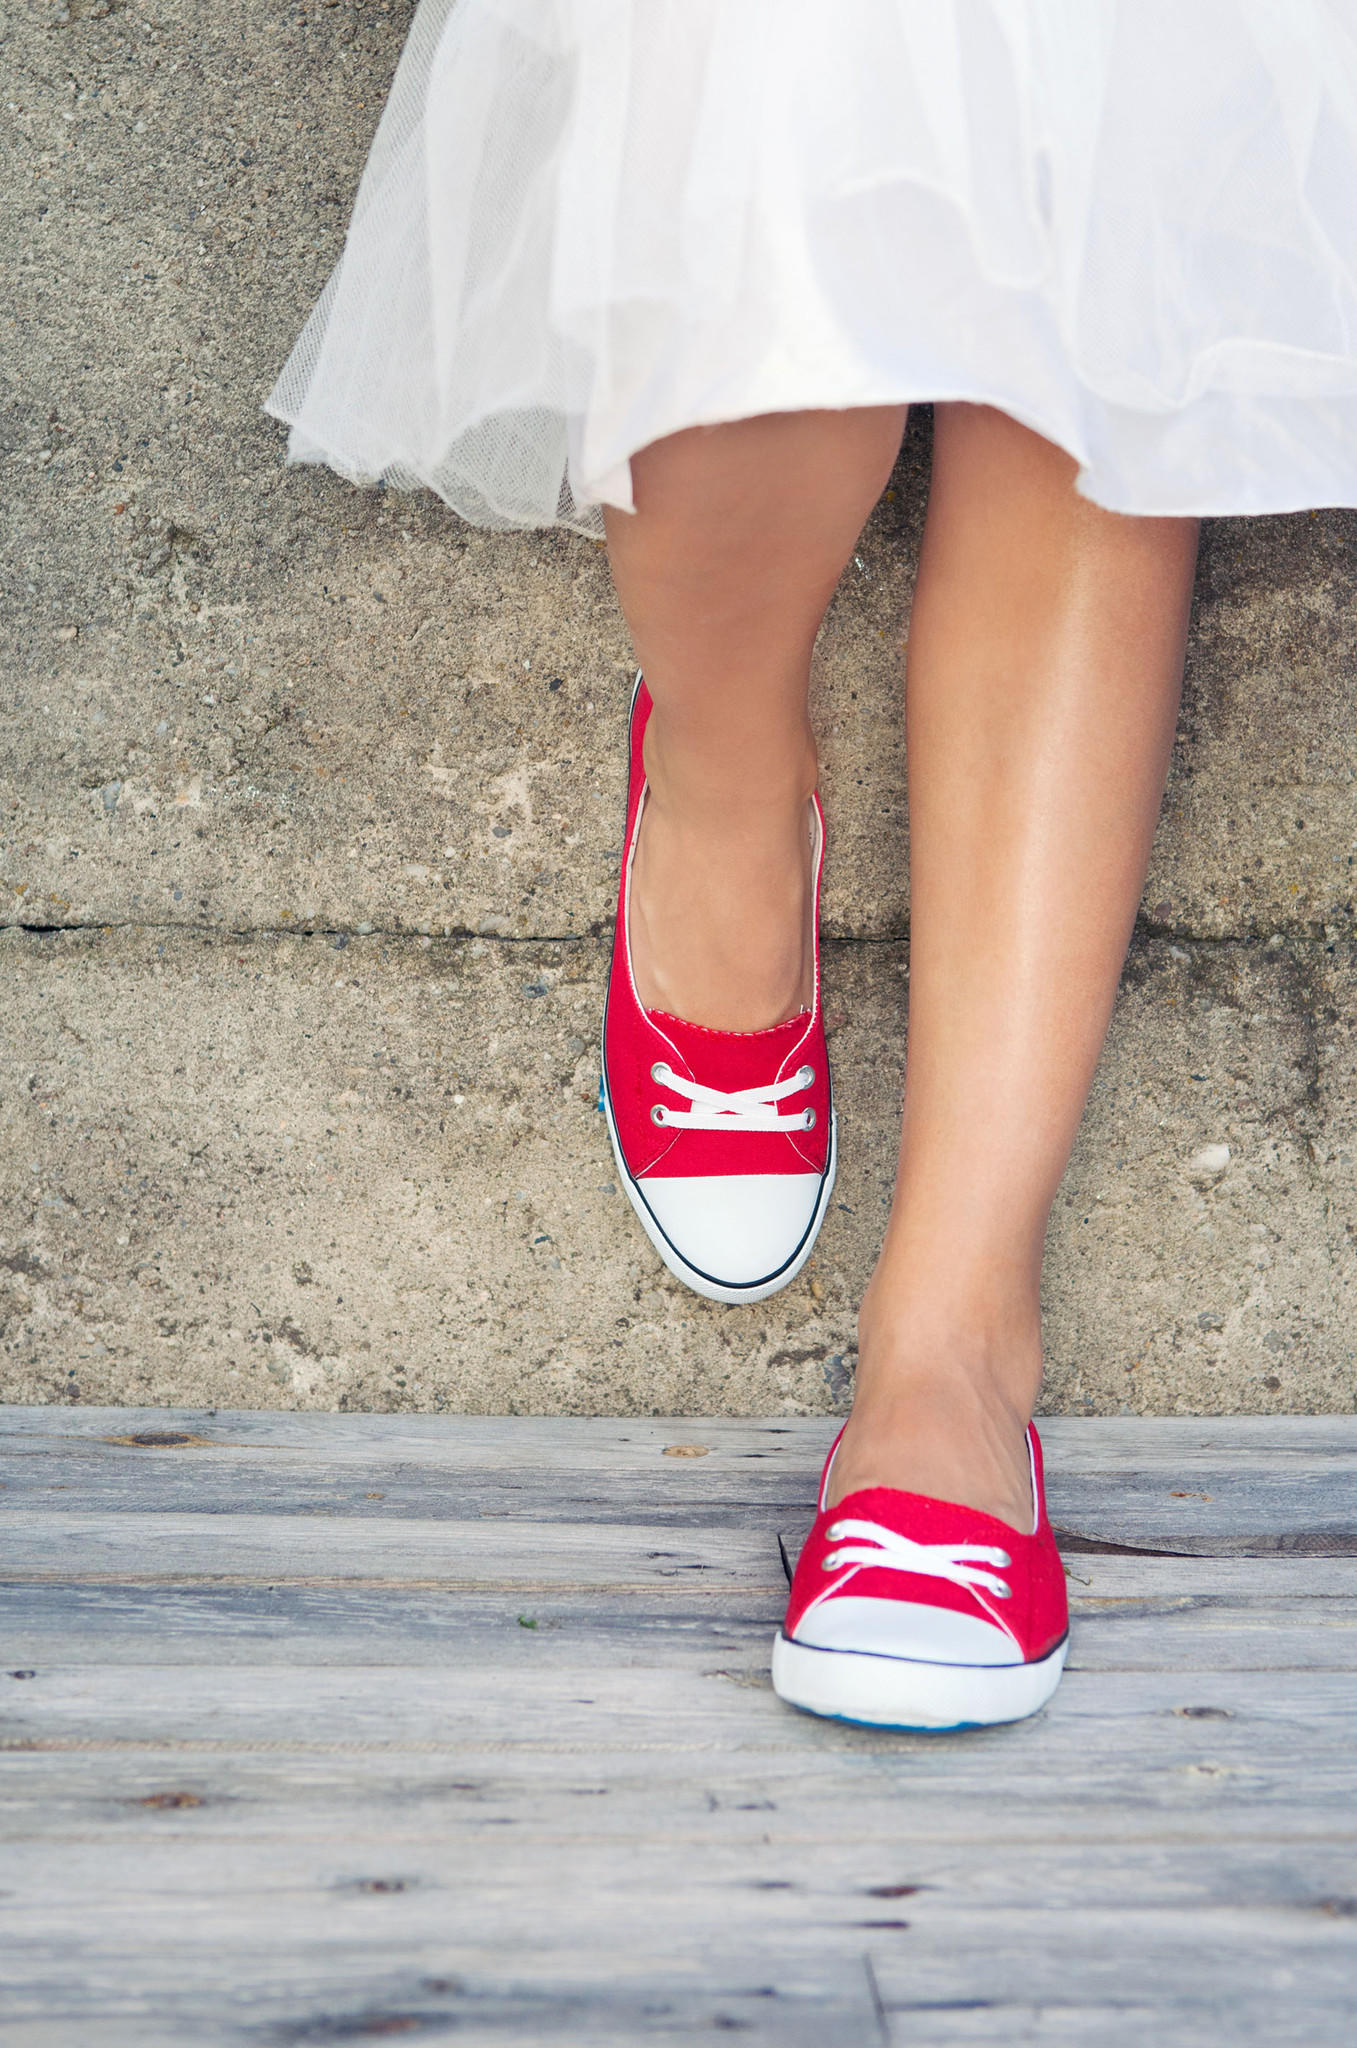 Slip-ons are your best bet if you're going to pair your sneakers with a dress or skirt.